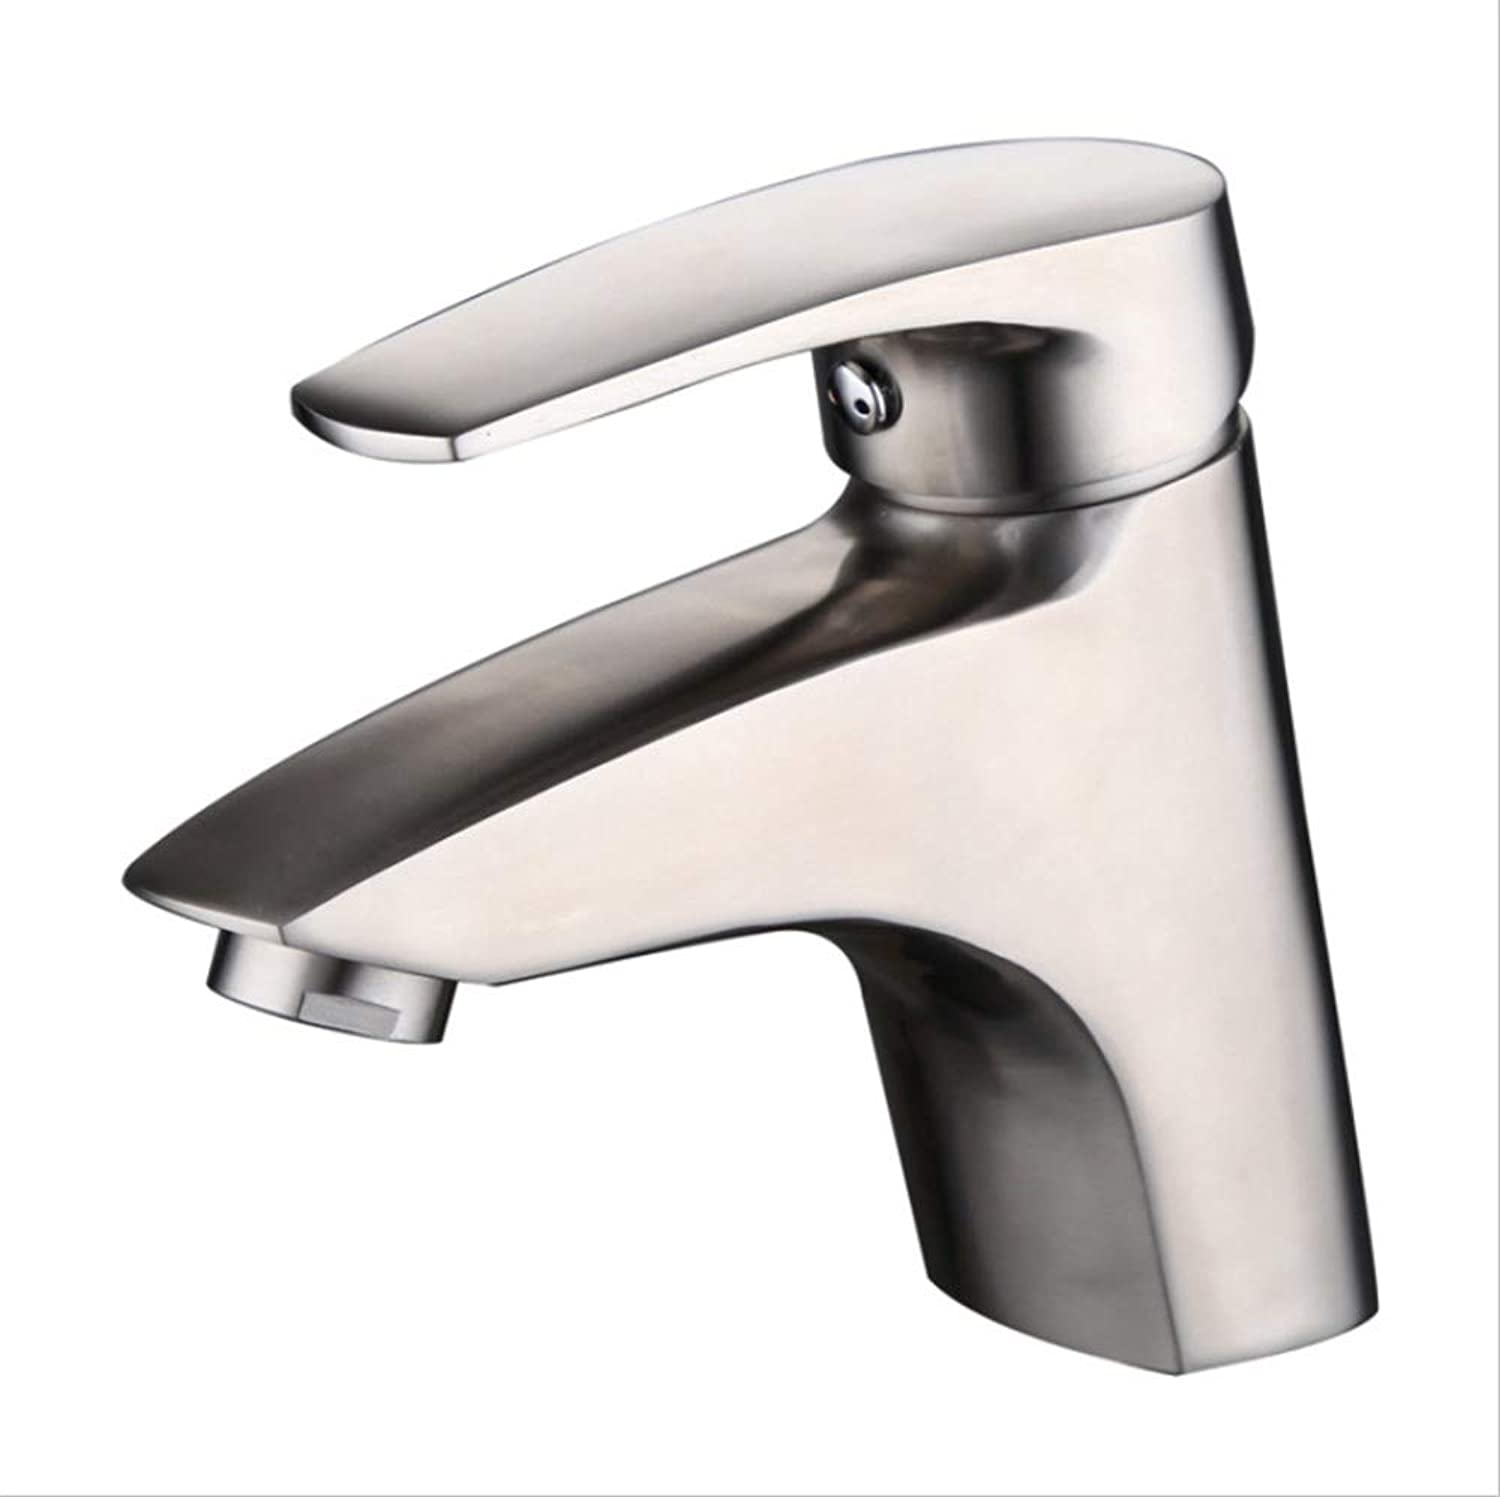 Basin Taps Swivel Spout Faucet 304 Stainless Steel Basin Faucet Cast Cold and Hot Basin Upper and Lower Basin Single Hole Washbasin Bathroom Toilet